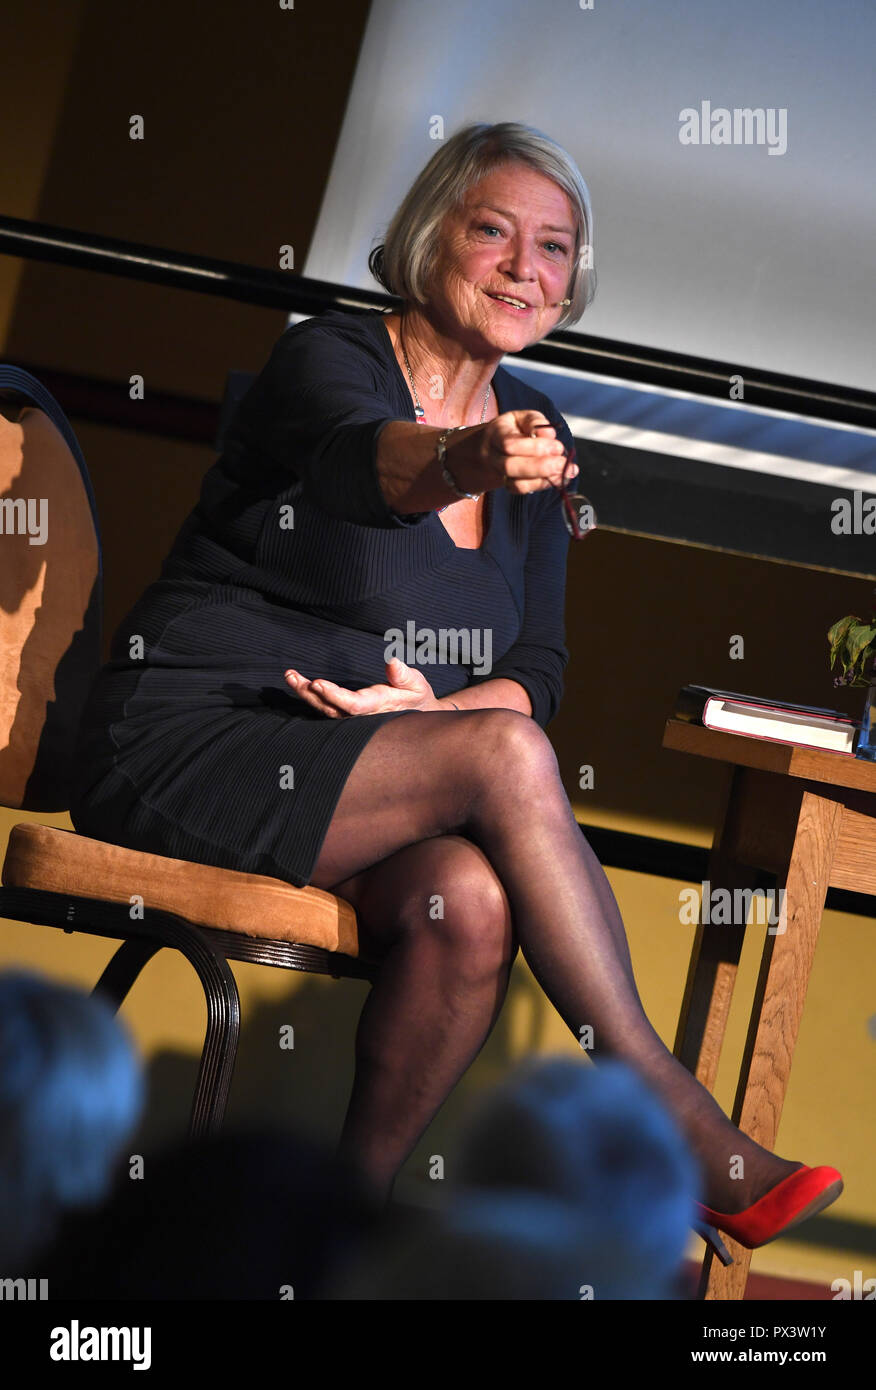 Kate Adie at Dorchester Literary Festival, Kate Adie, English journalist, Credit: Finnbarr Webster/Alamy Live News - Stock Image